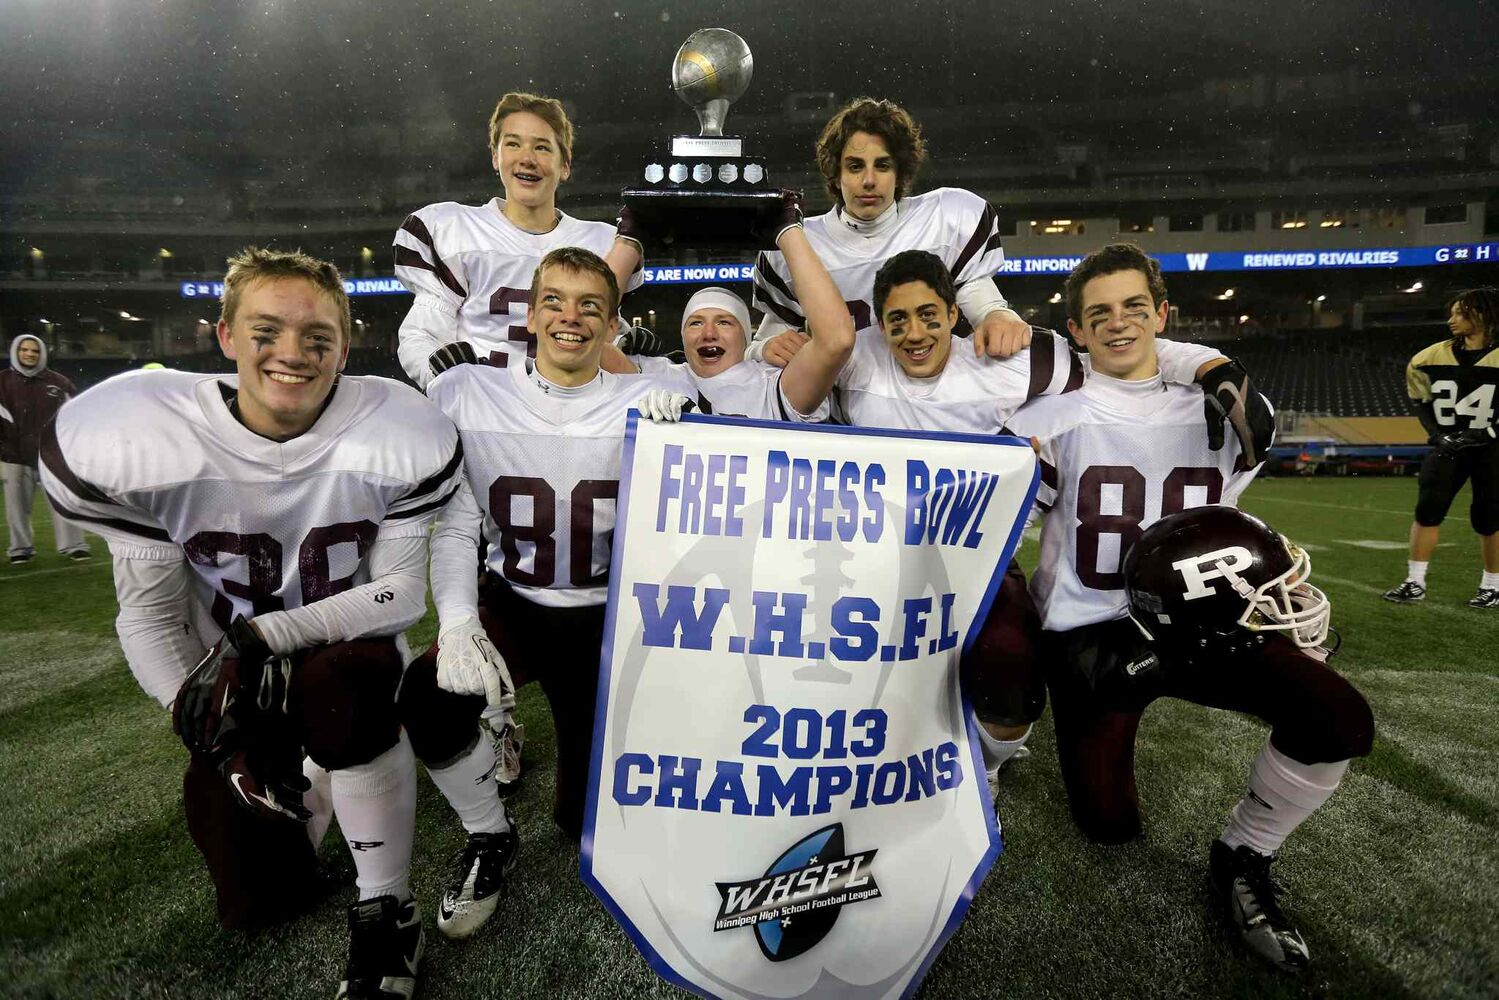 The St.Paul's Crusaders AA football team celebrates their Free Press Bowl Championship victory over the Garden City Fighting Gophers. (Trevor Hagan / Winnipeg Free Press)